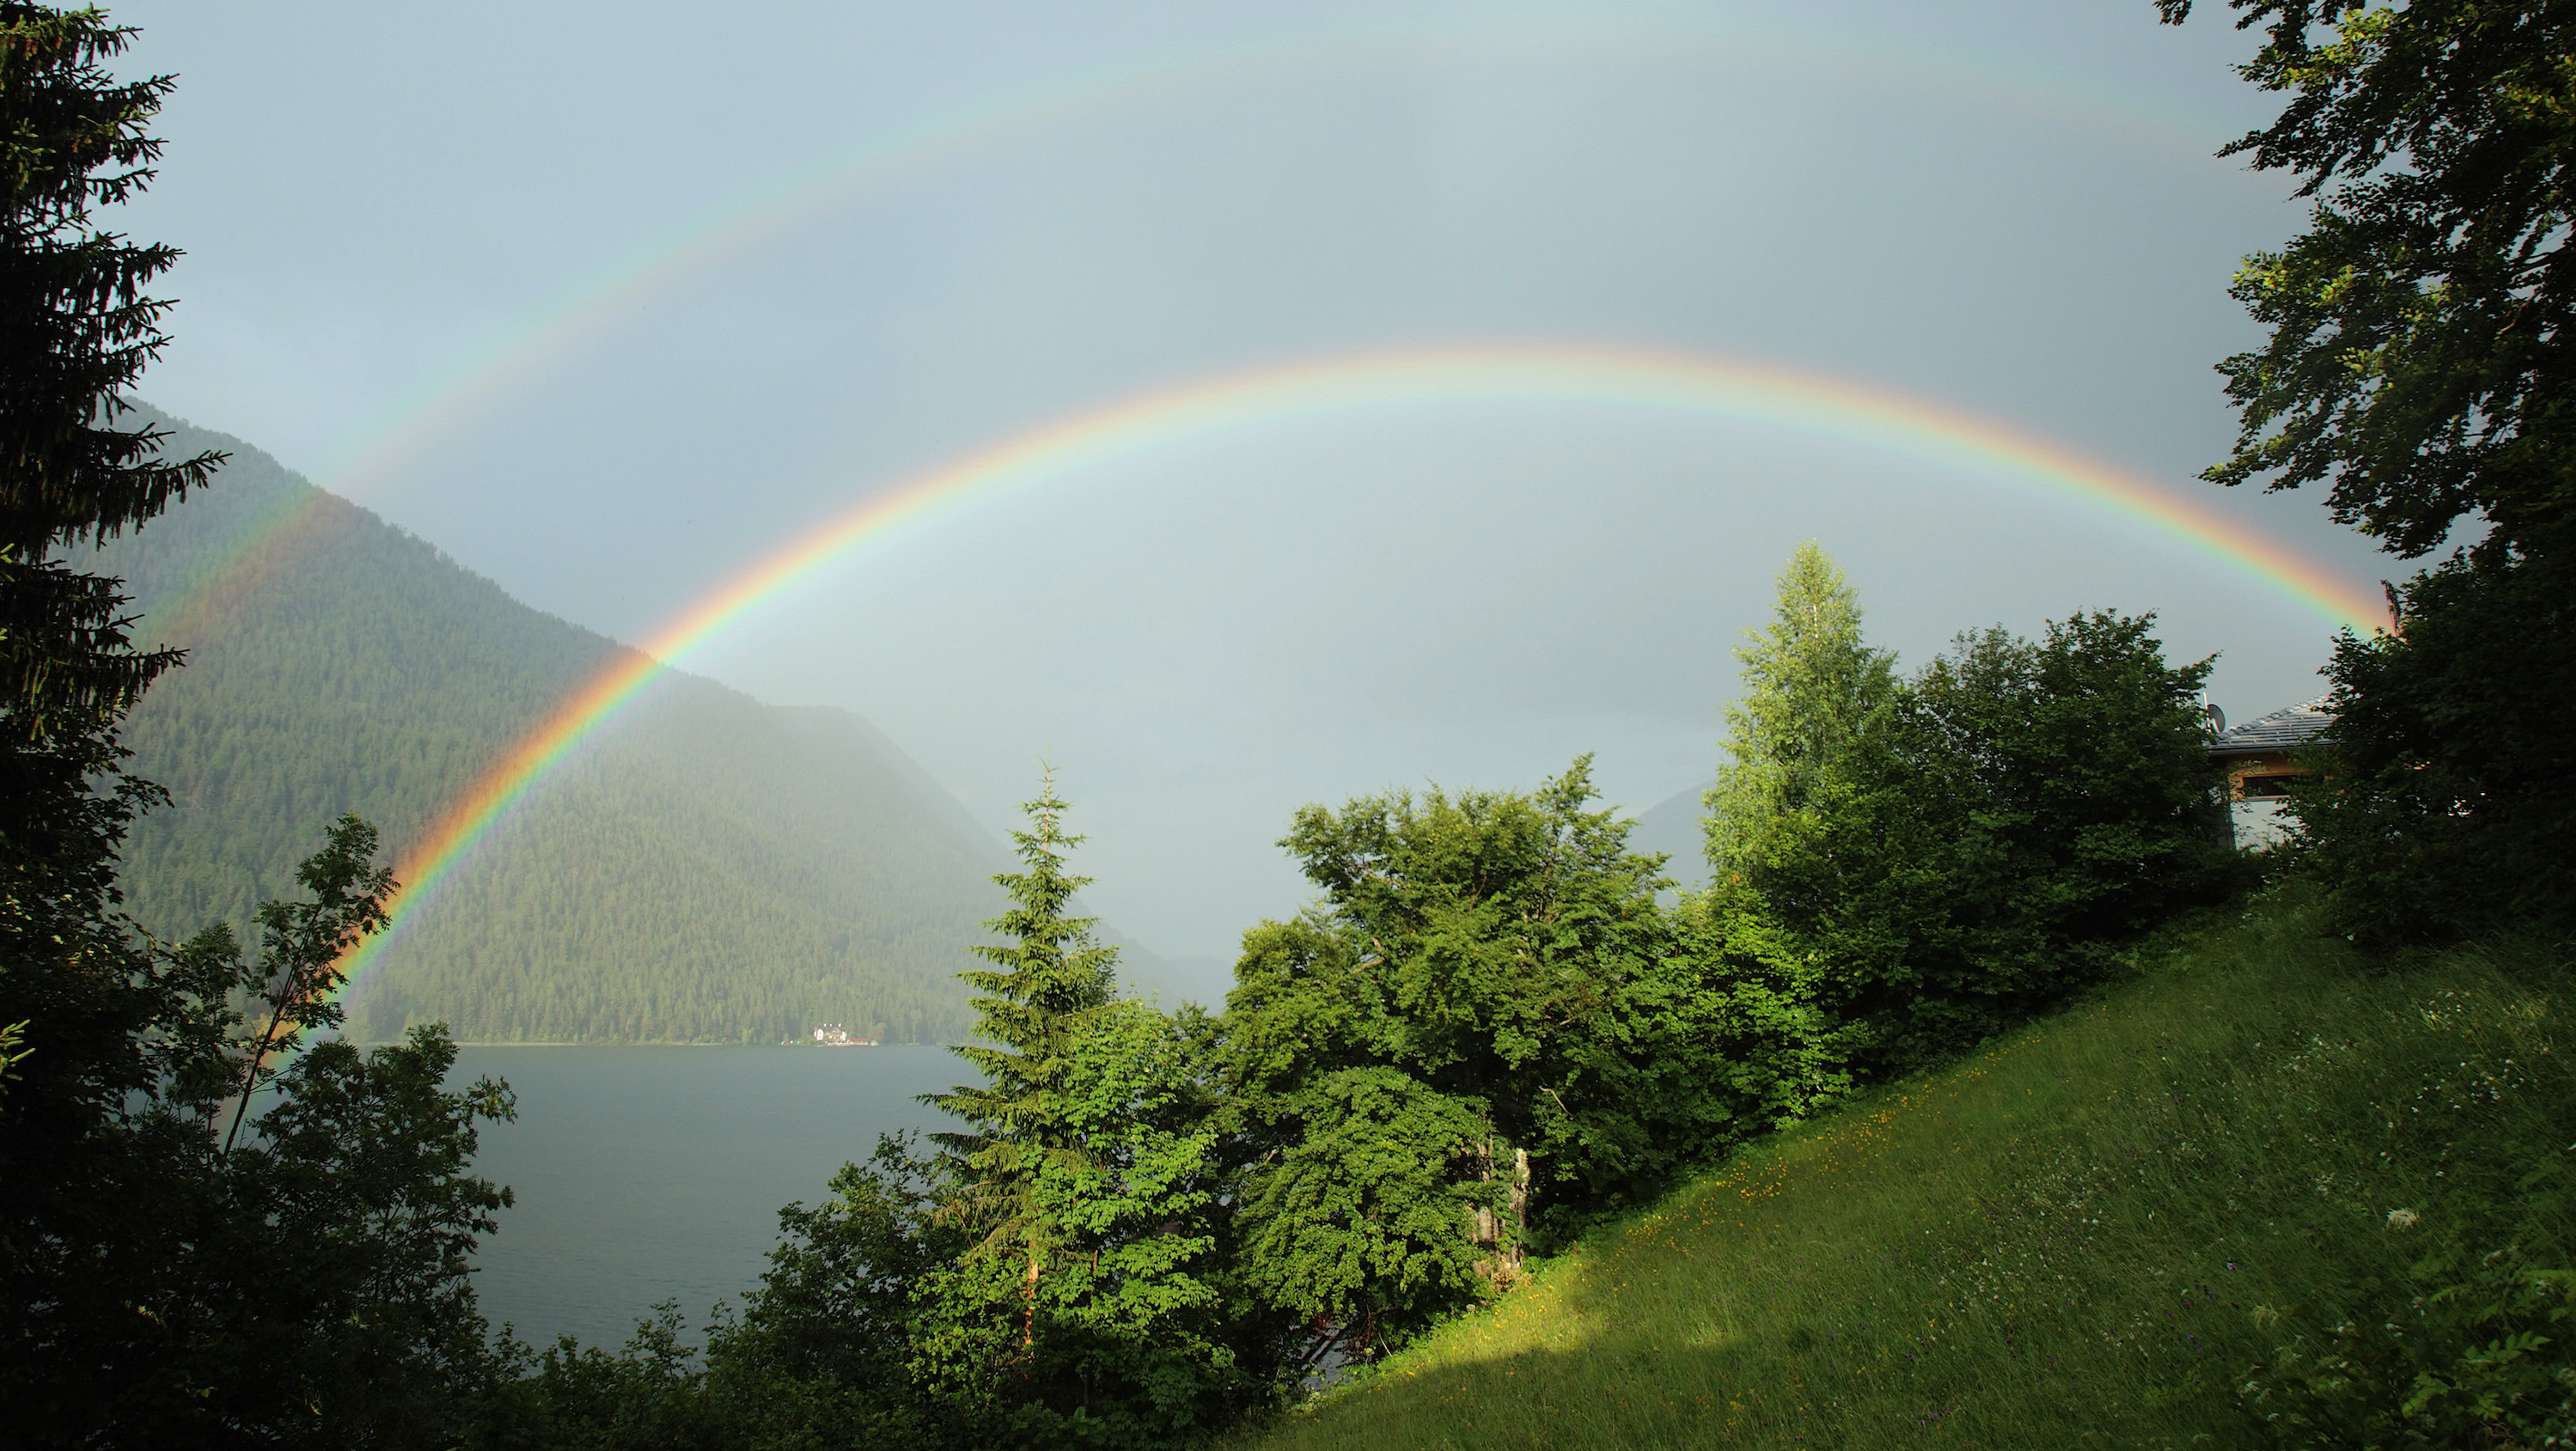 A double rainbow appears above Lake Weissensee in Naggl in Austria's southern Carinthia province